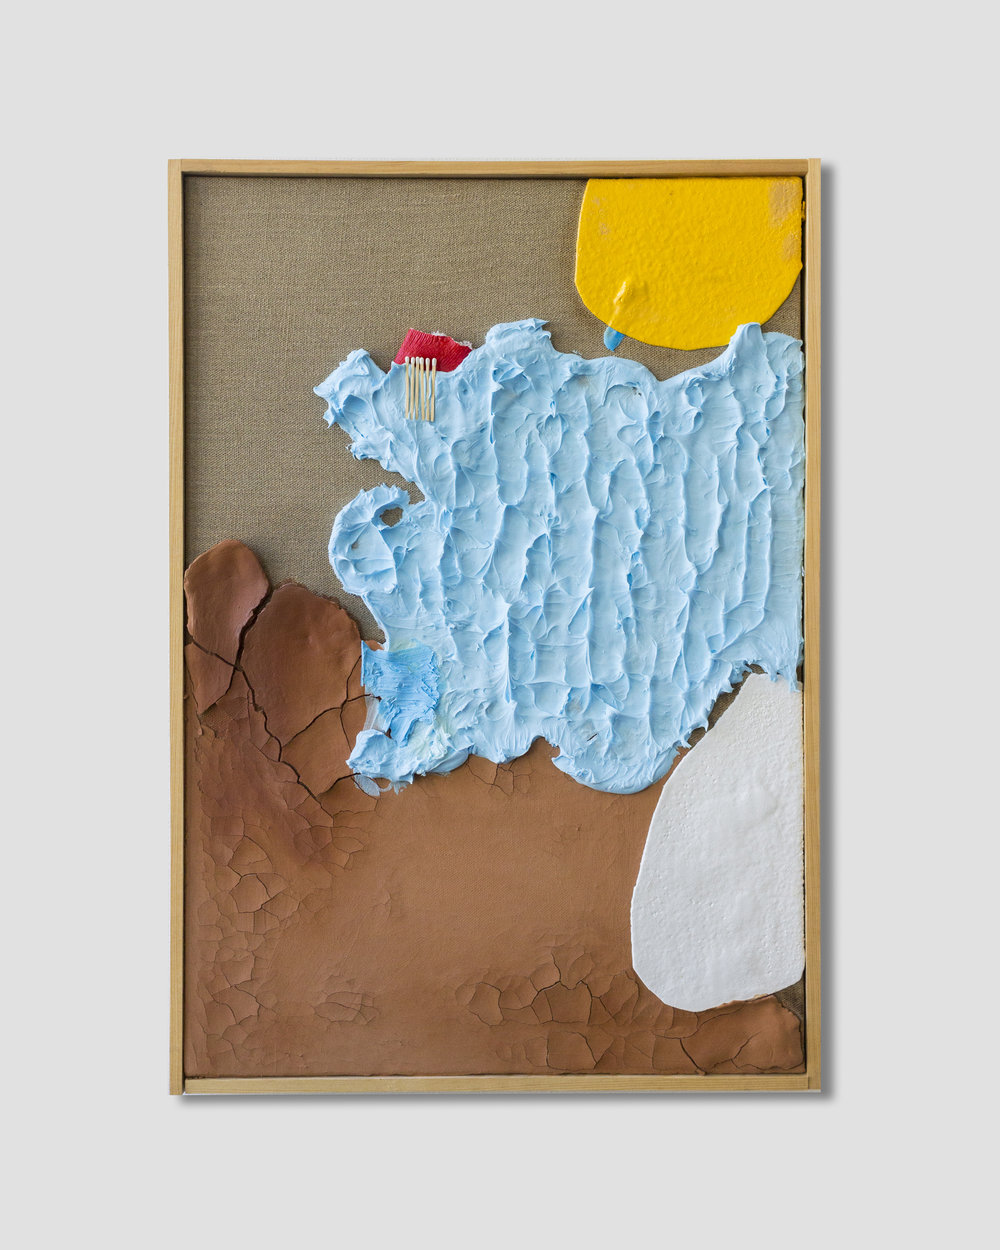 Today Is A Blessing,    Oil, acrylic, natural red clay, thermosplastic, rubber glove and collaged matches on linen,   30 in x 21 in, (76 cm x 54 cm)